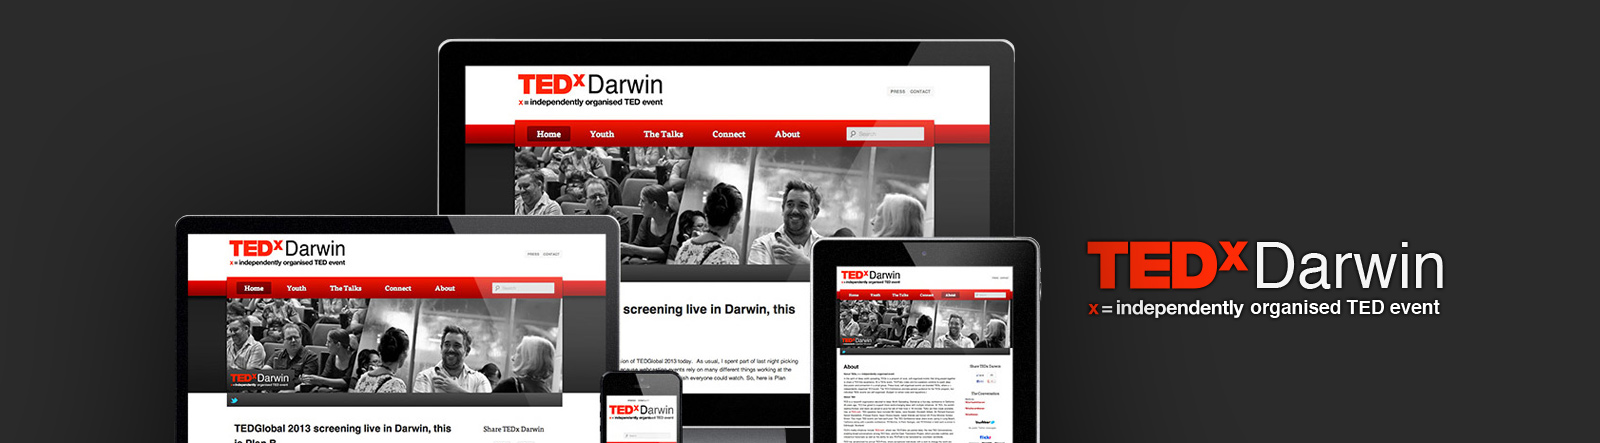 Thomas Marsden Advertising Penrith, Sydney offer great web design and SEO solutions to produce a successful TEDx Darwin brand.